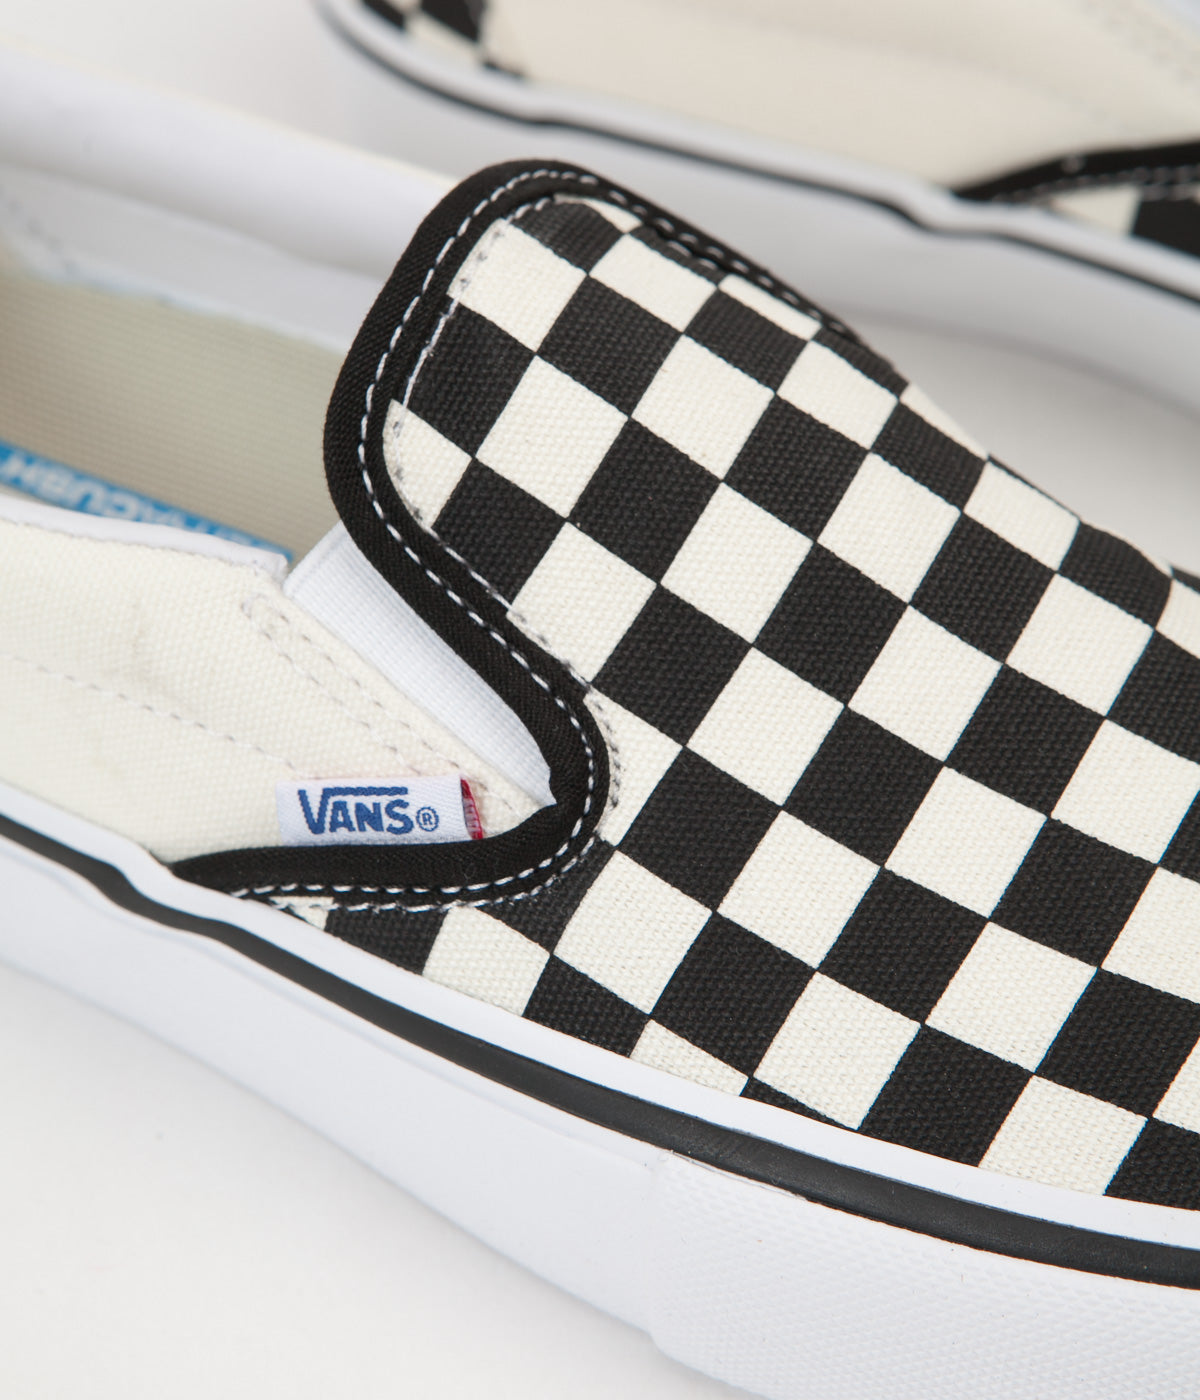 Vans Slip-On Pro Checkerboard Shoes - Black / White